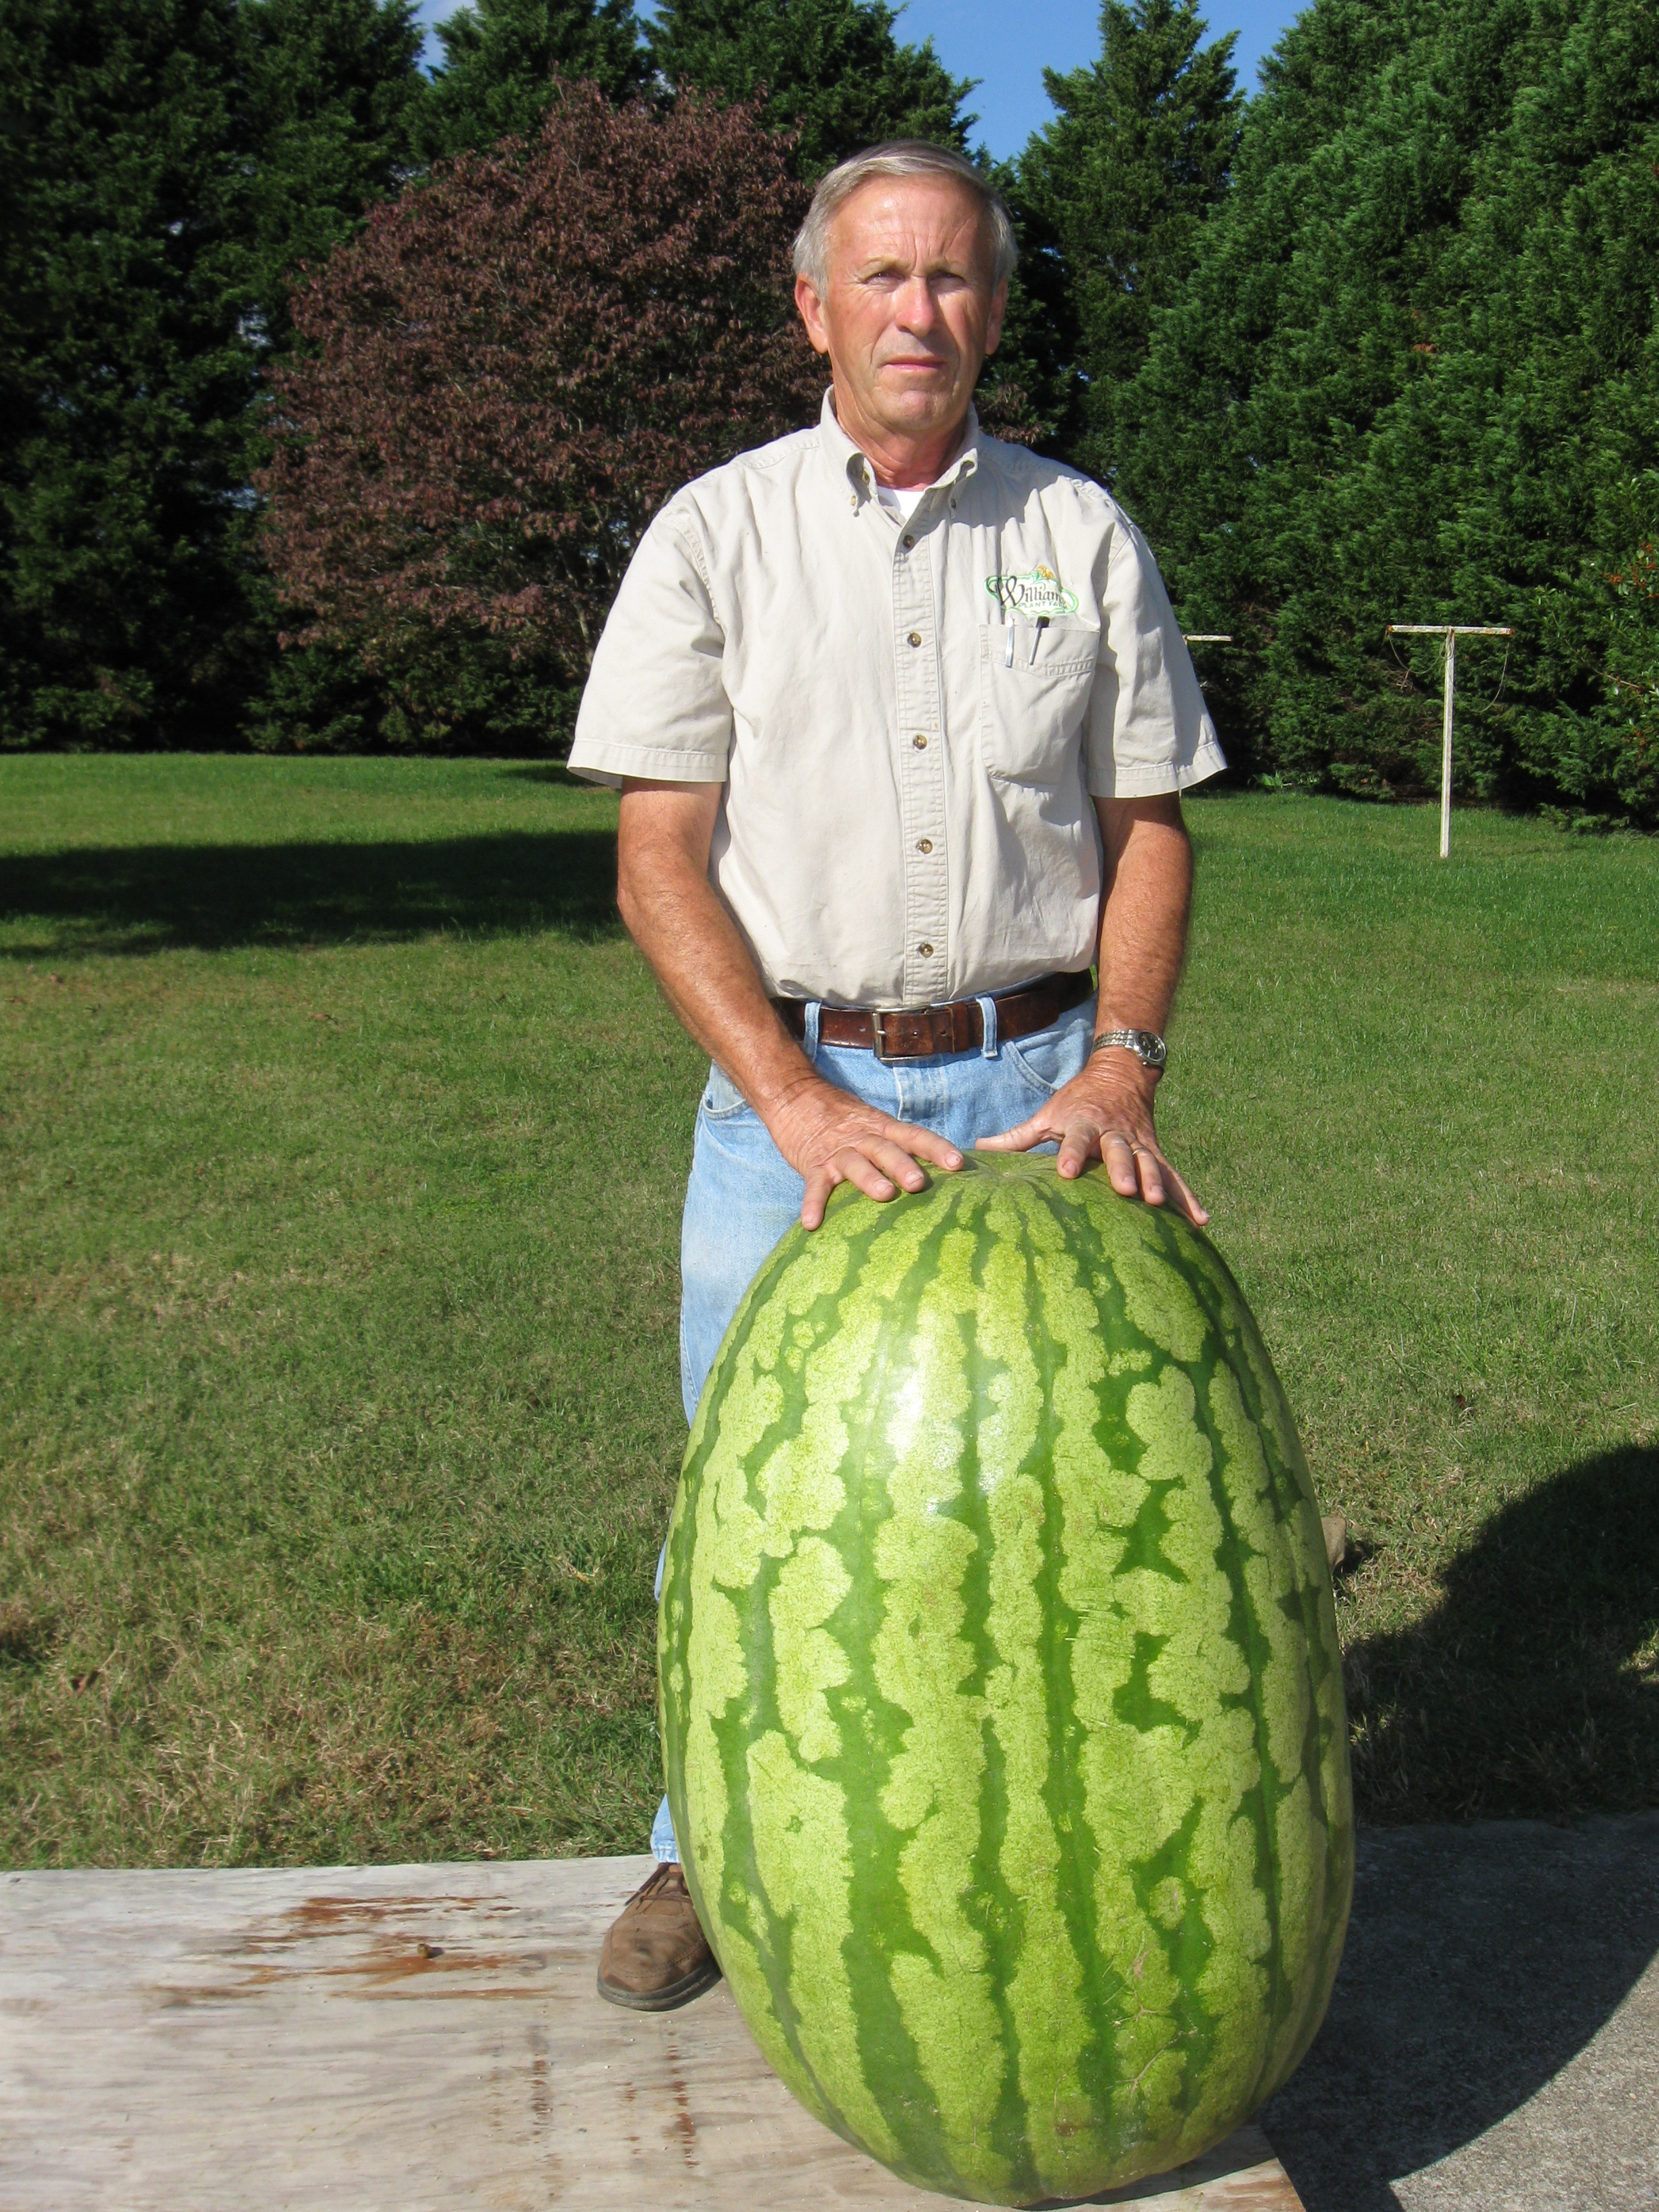 Giant Watermelon Picture - 233.5 Williams